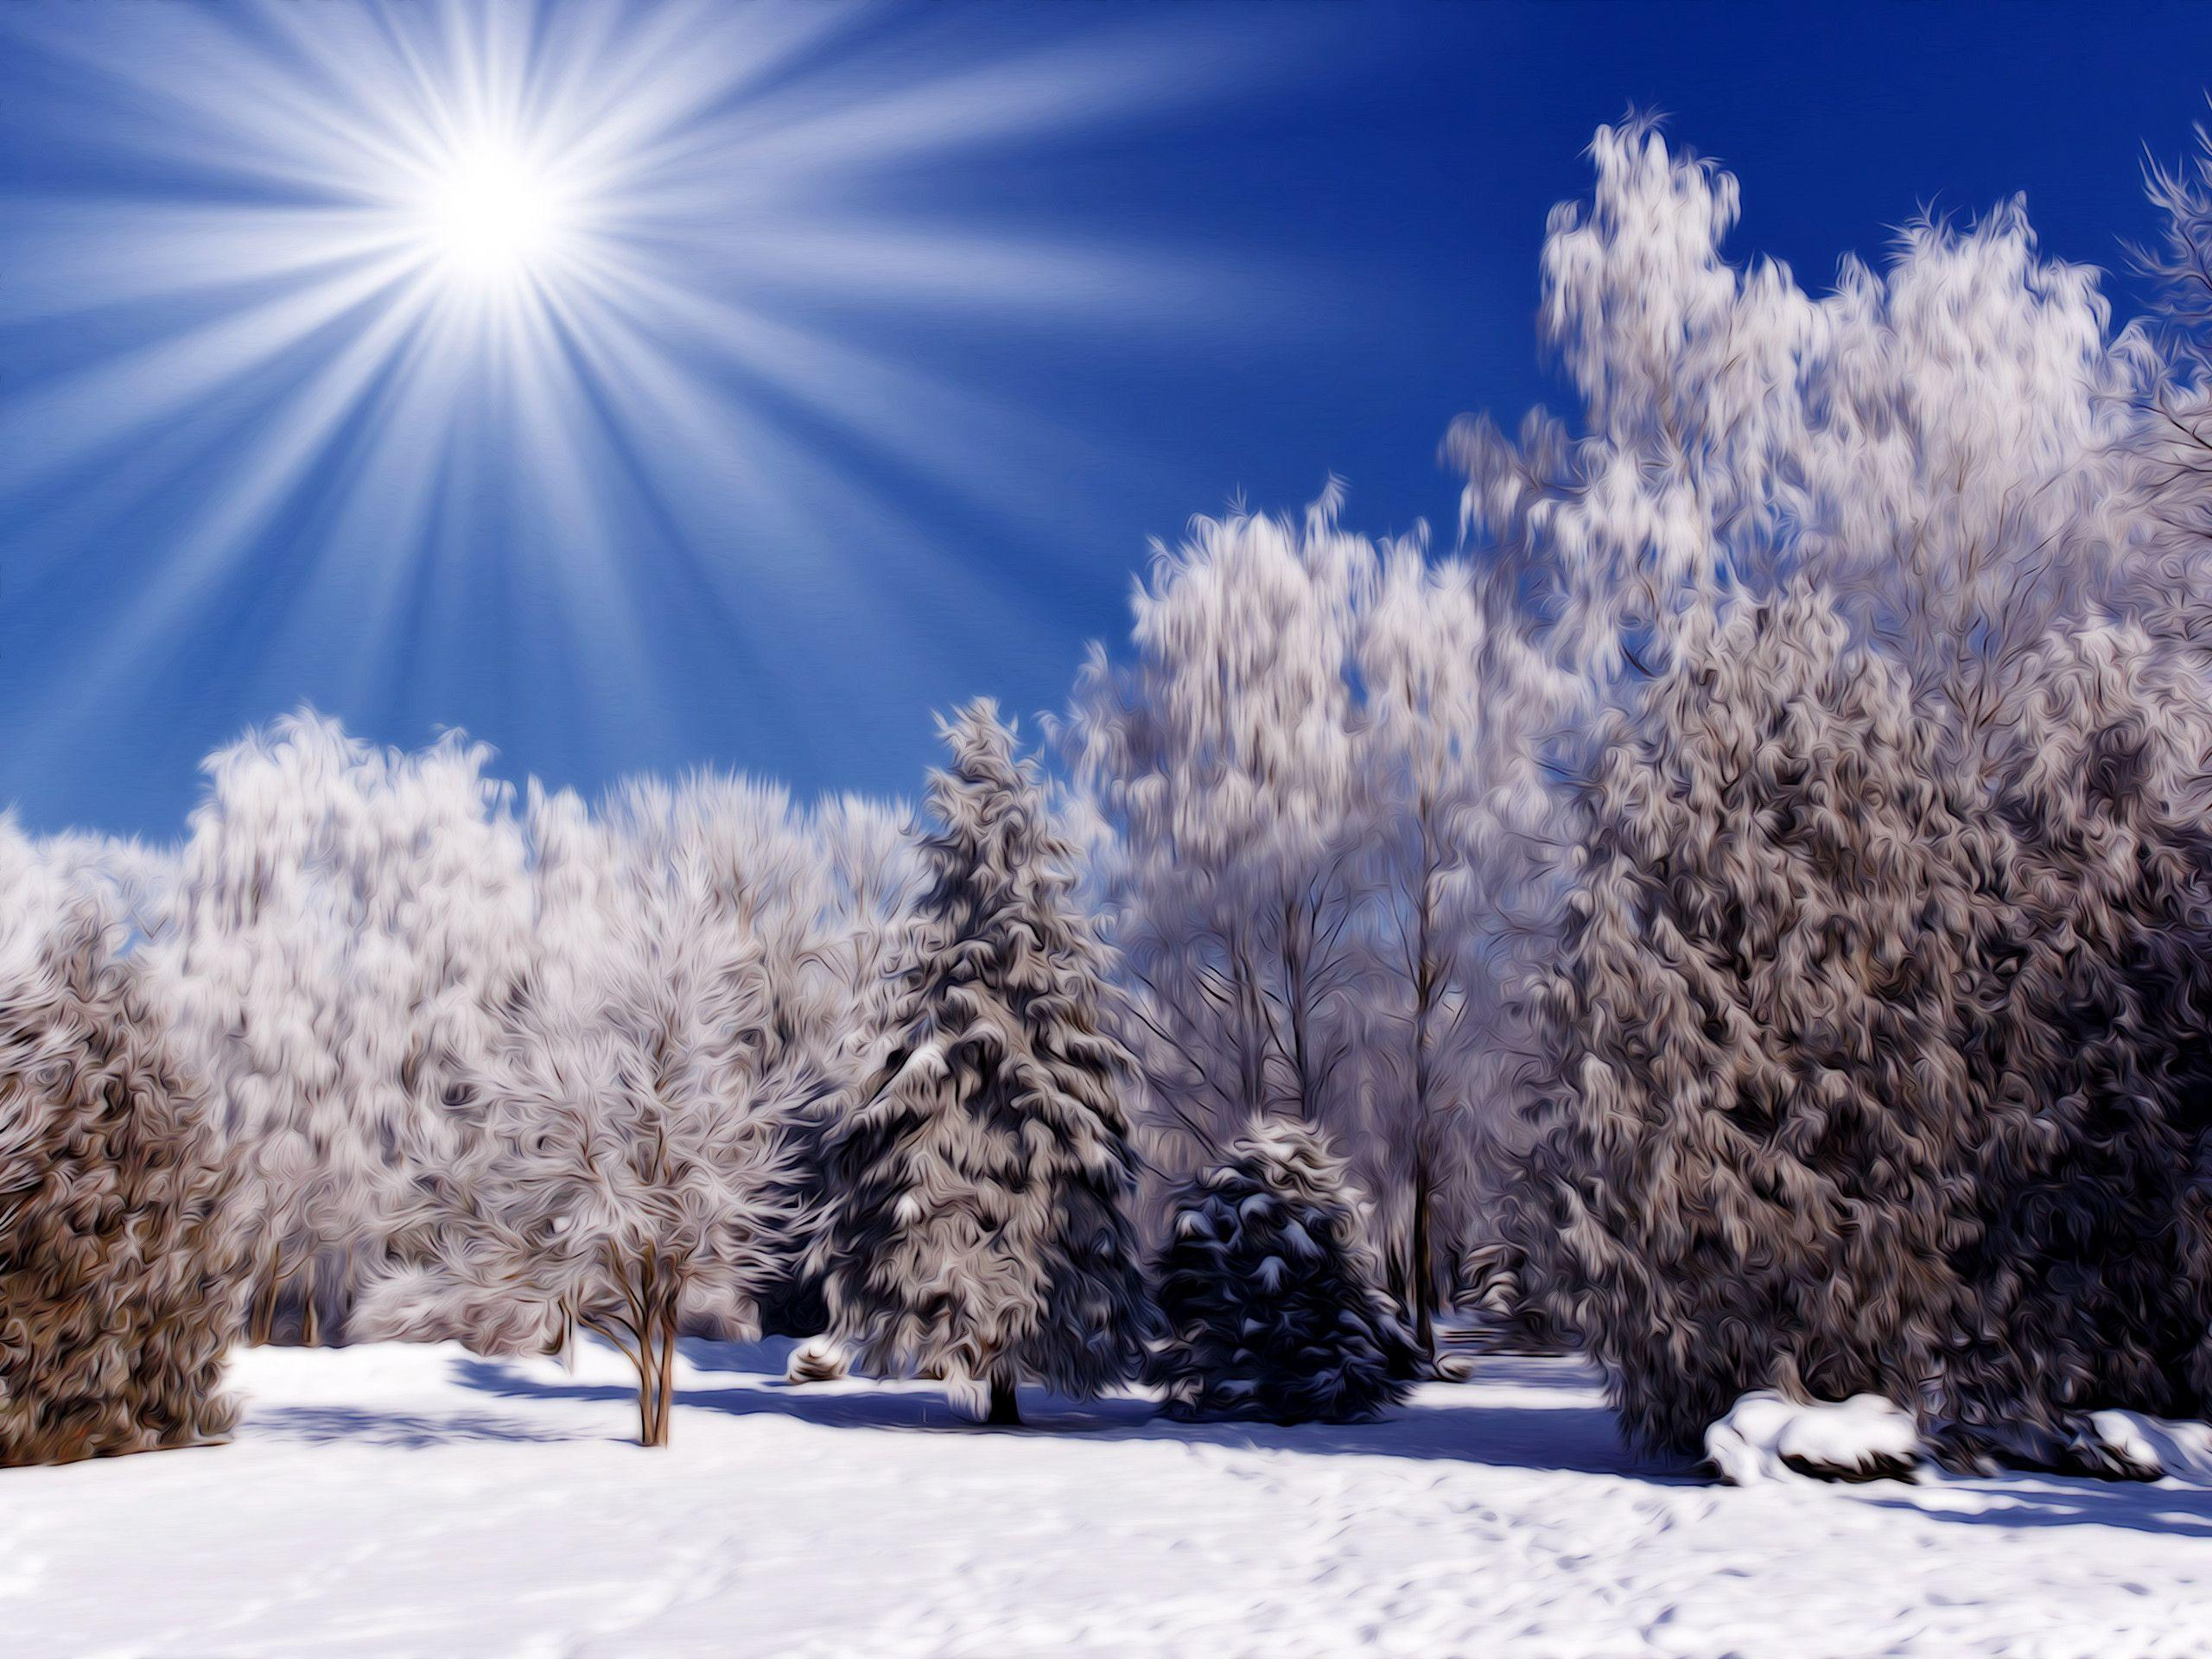 Winter Nature Snow Scene Wallpapers 19808 Full HD Wallpapers Desktop